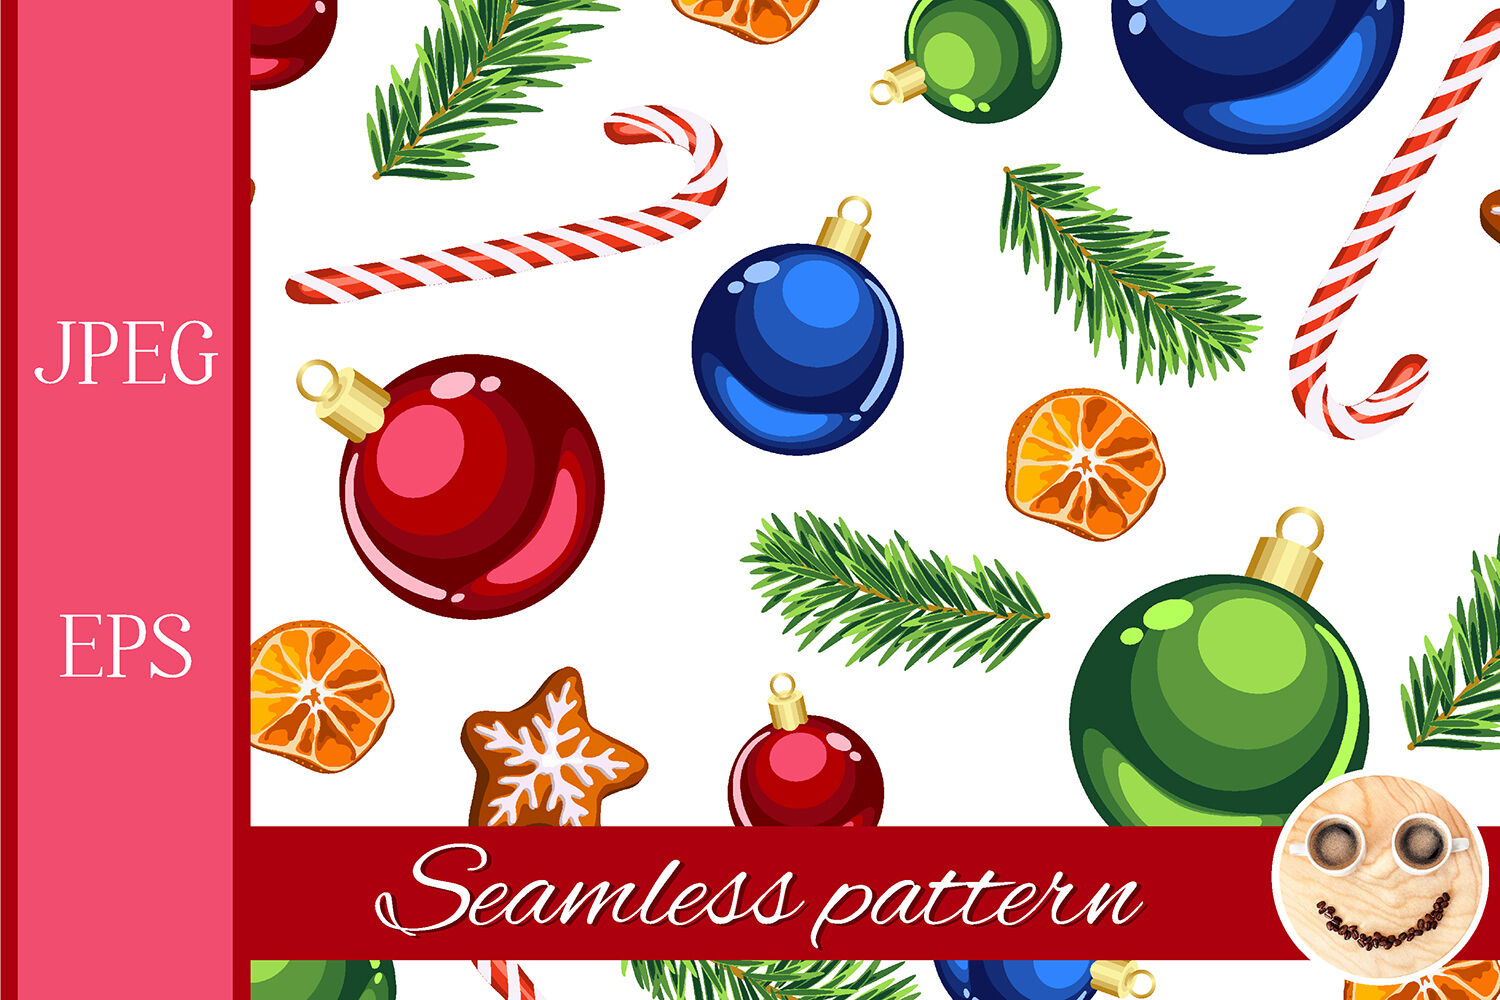 Christmas Ornaments And Candy Canes Seamless Pattern By Tasipas